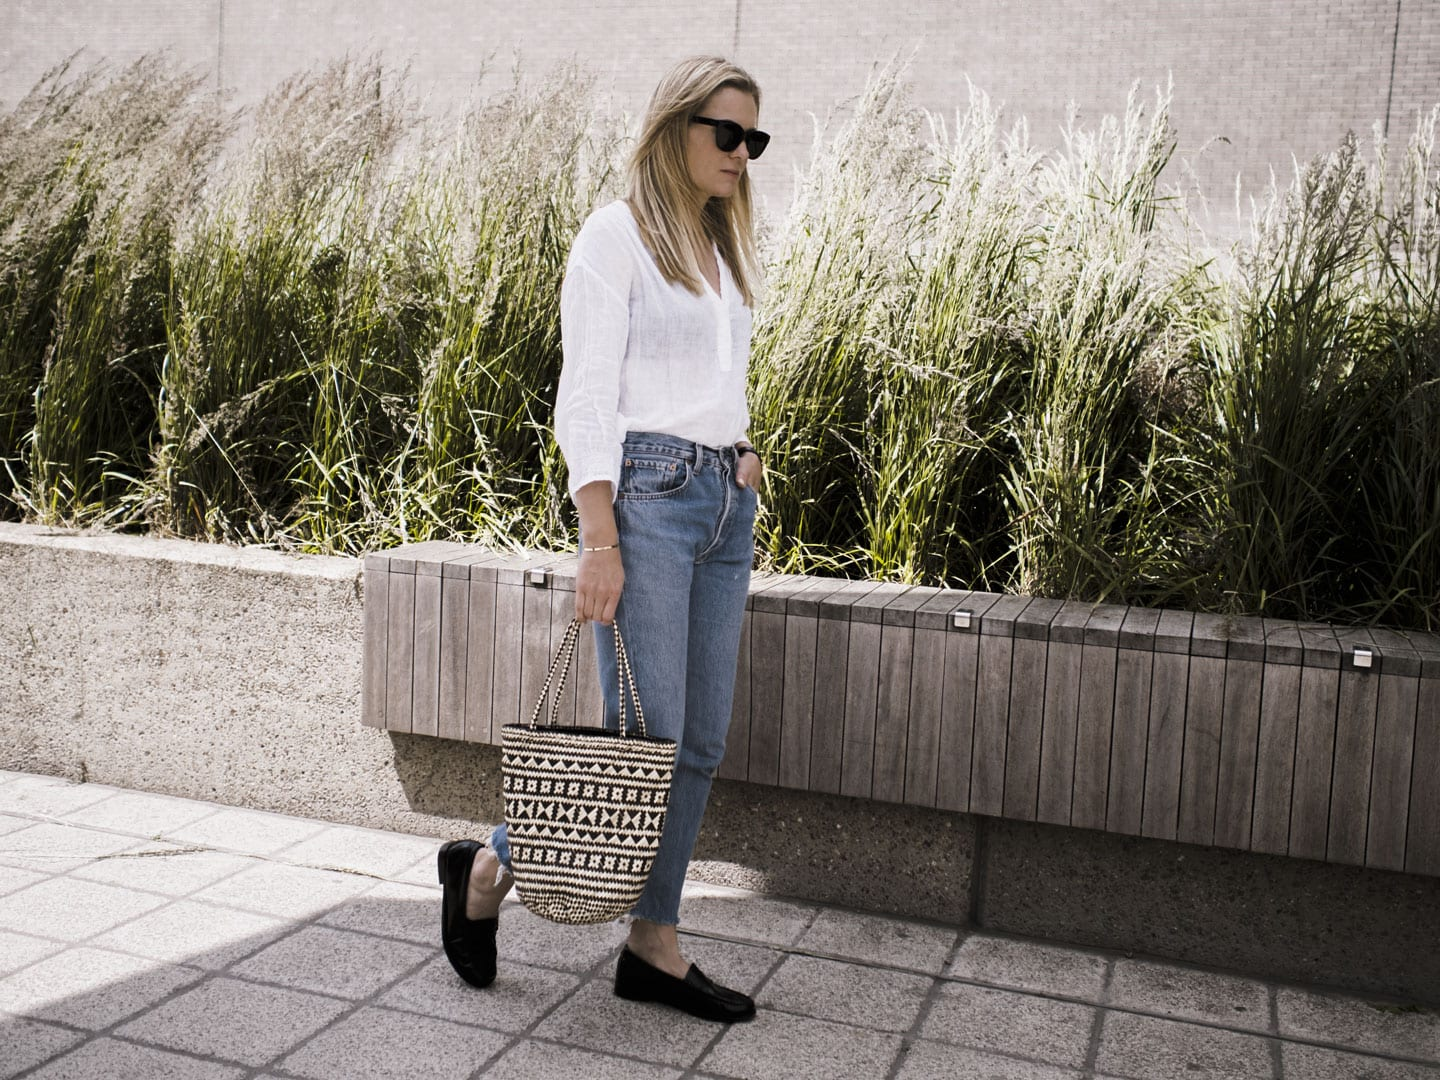 Vikki wears The White Company Linen Blouse, Levi 501s, Bass Weejun loafers and Straw Bag